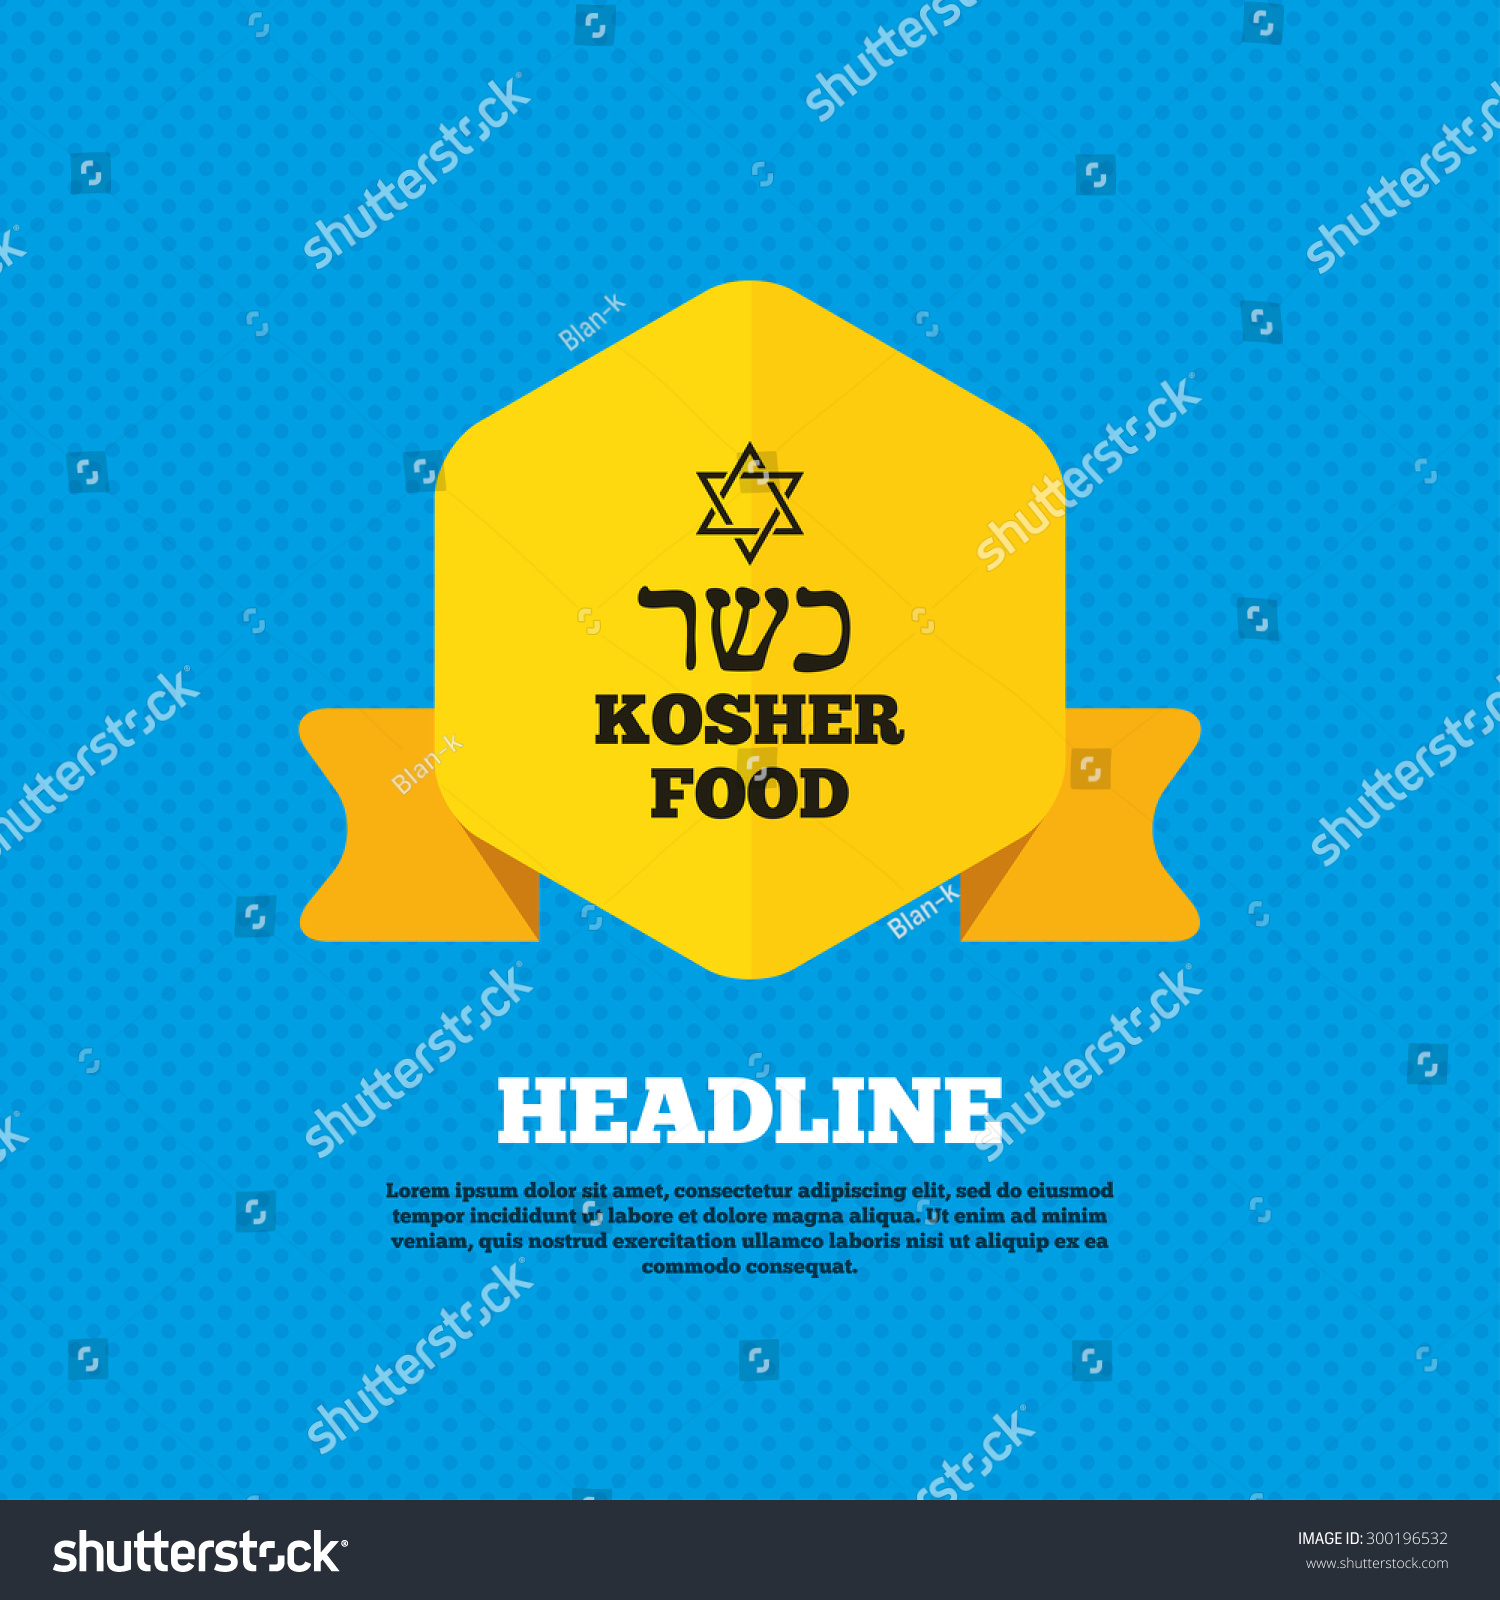 Heart k kosher symbol images symbol and sign ideas circle k kosher symbol gallery symbol and sign ideas kosher food product sign icon natural stock buycottarizona